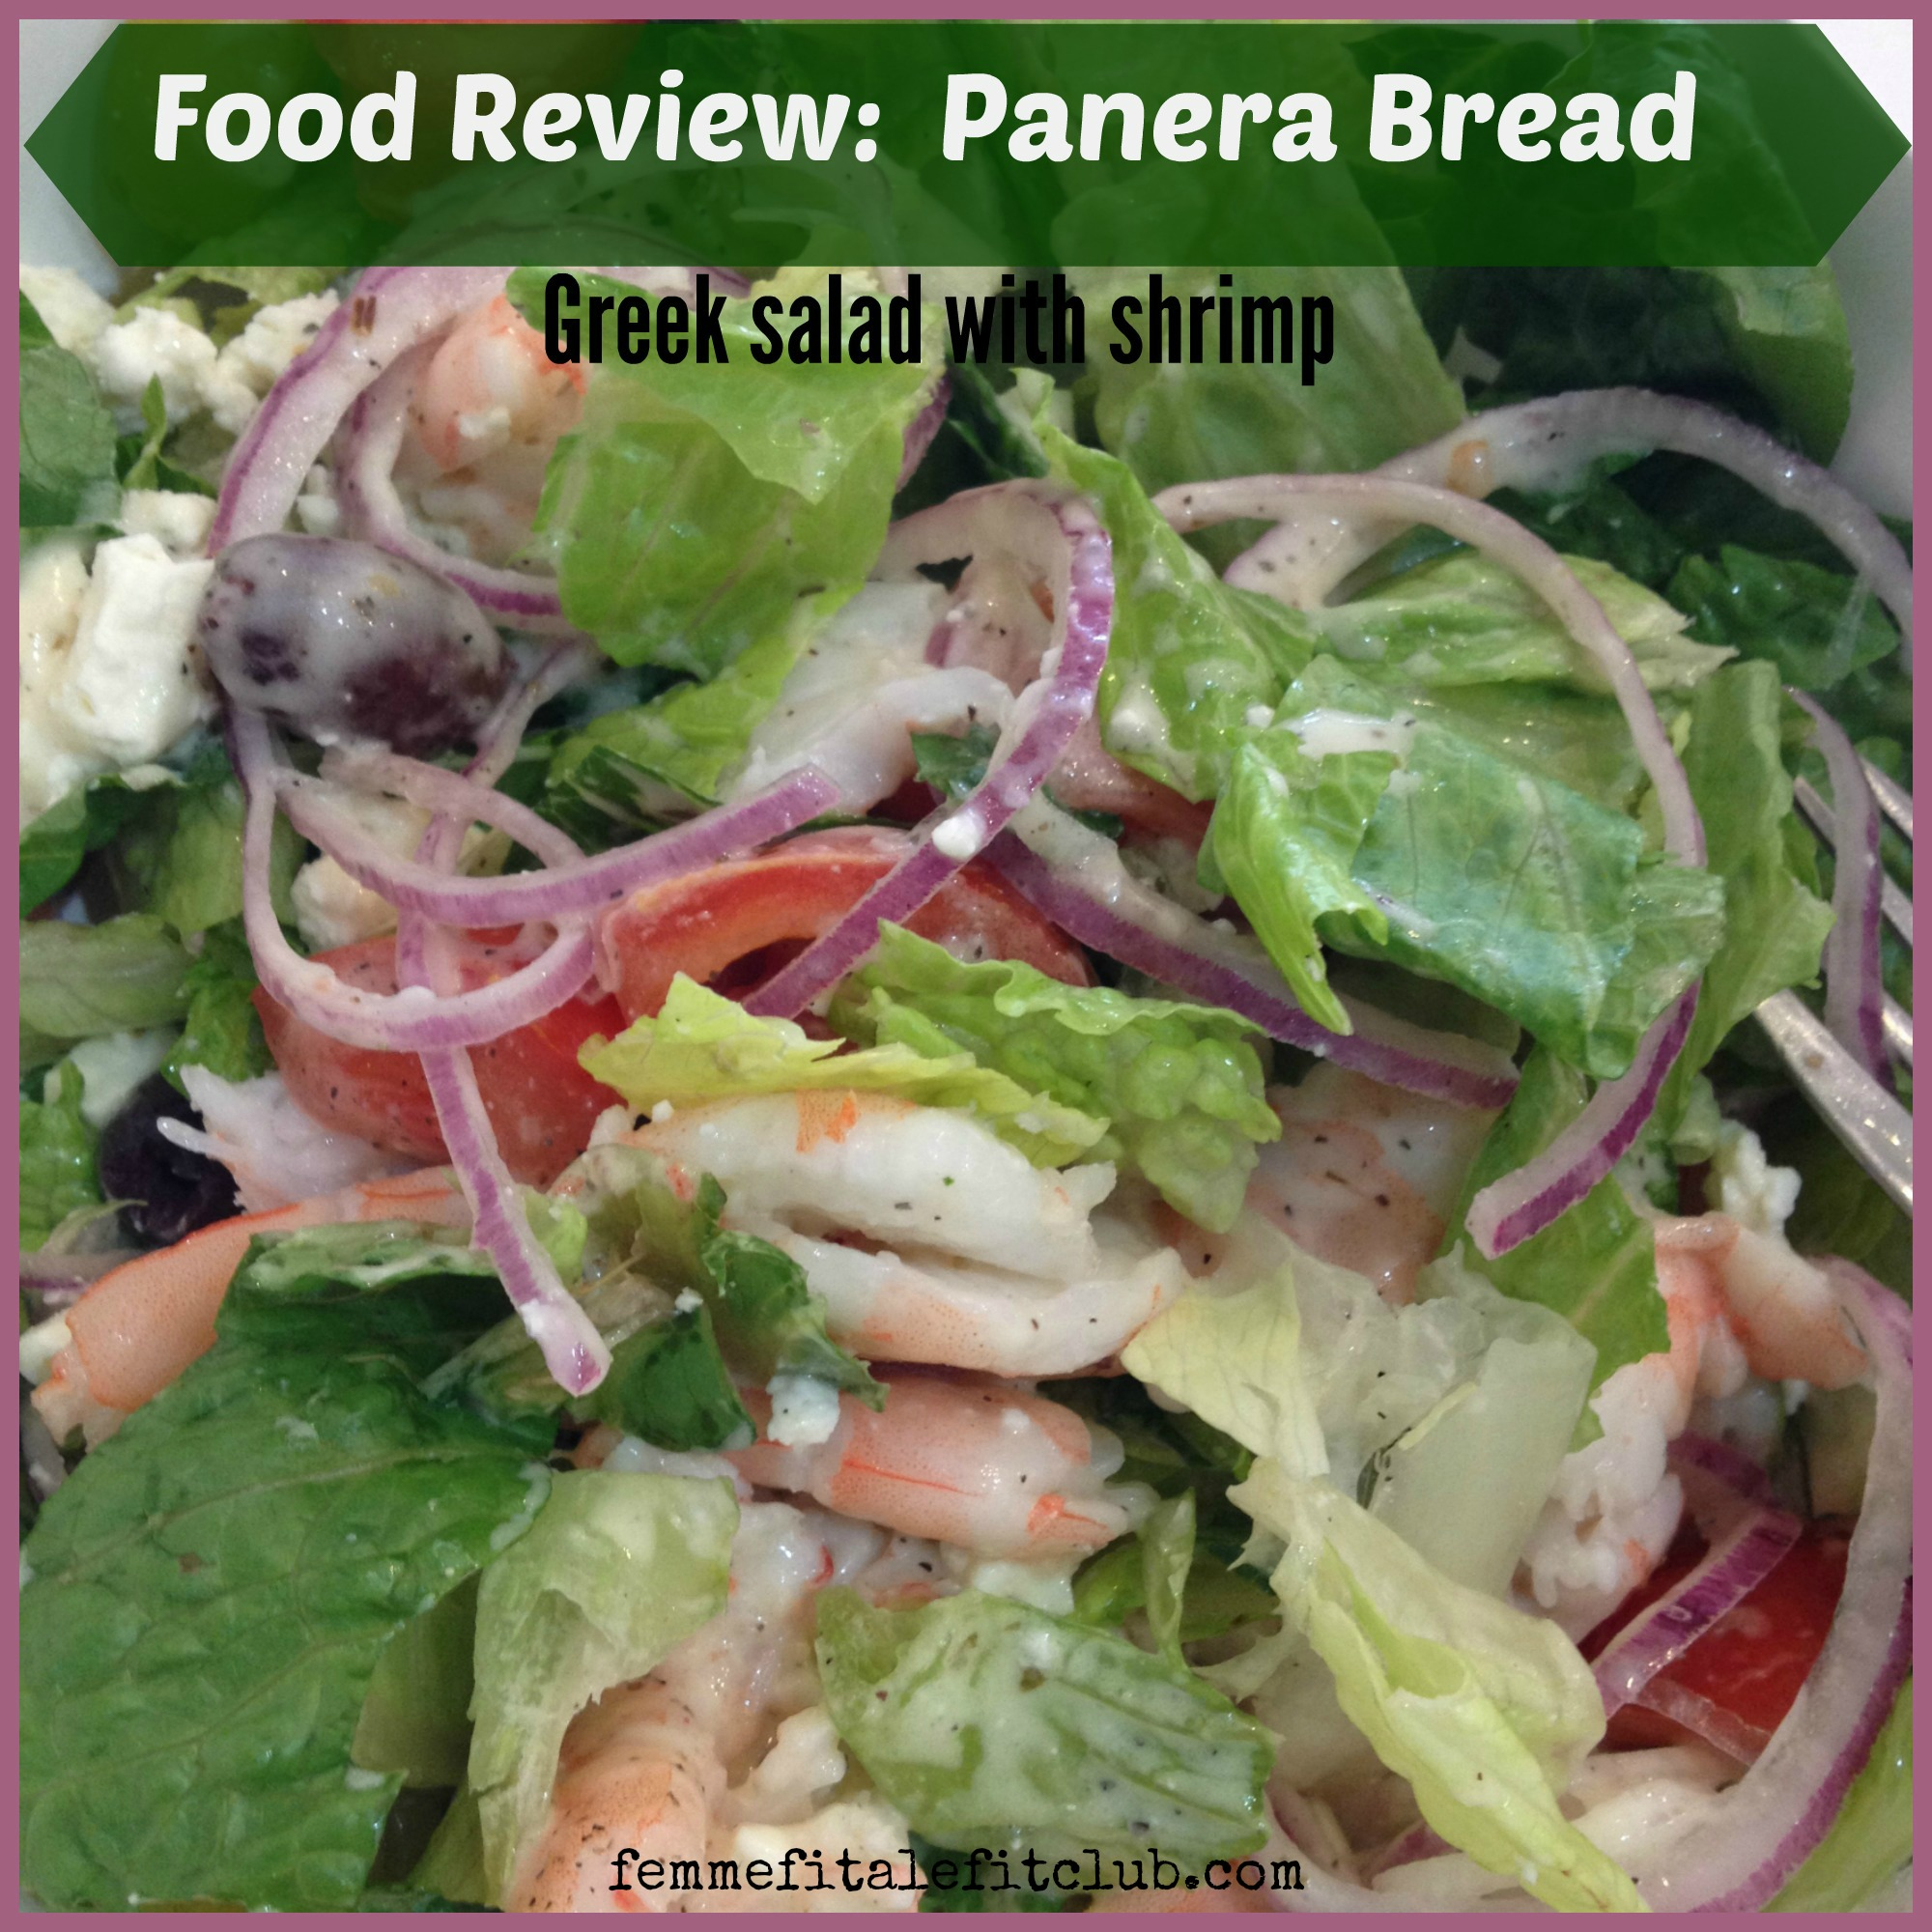 Panera Bread Greek Salad with Shrimp